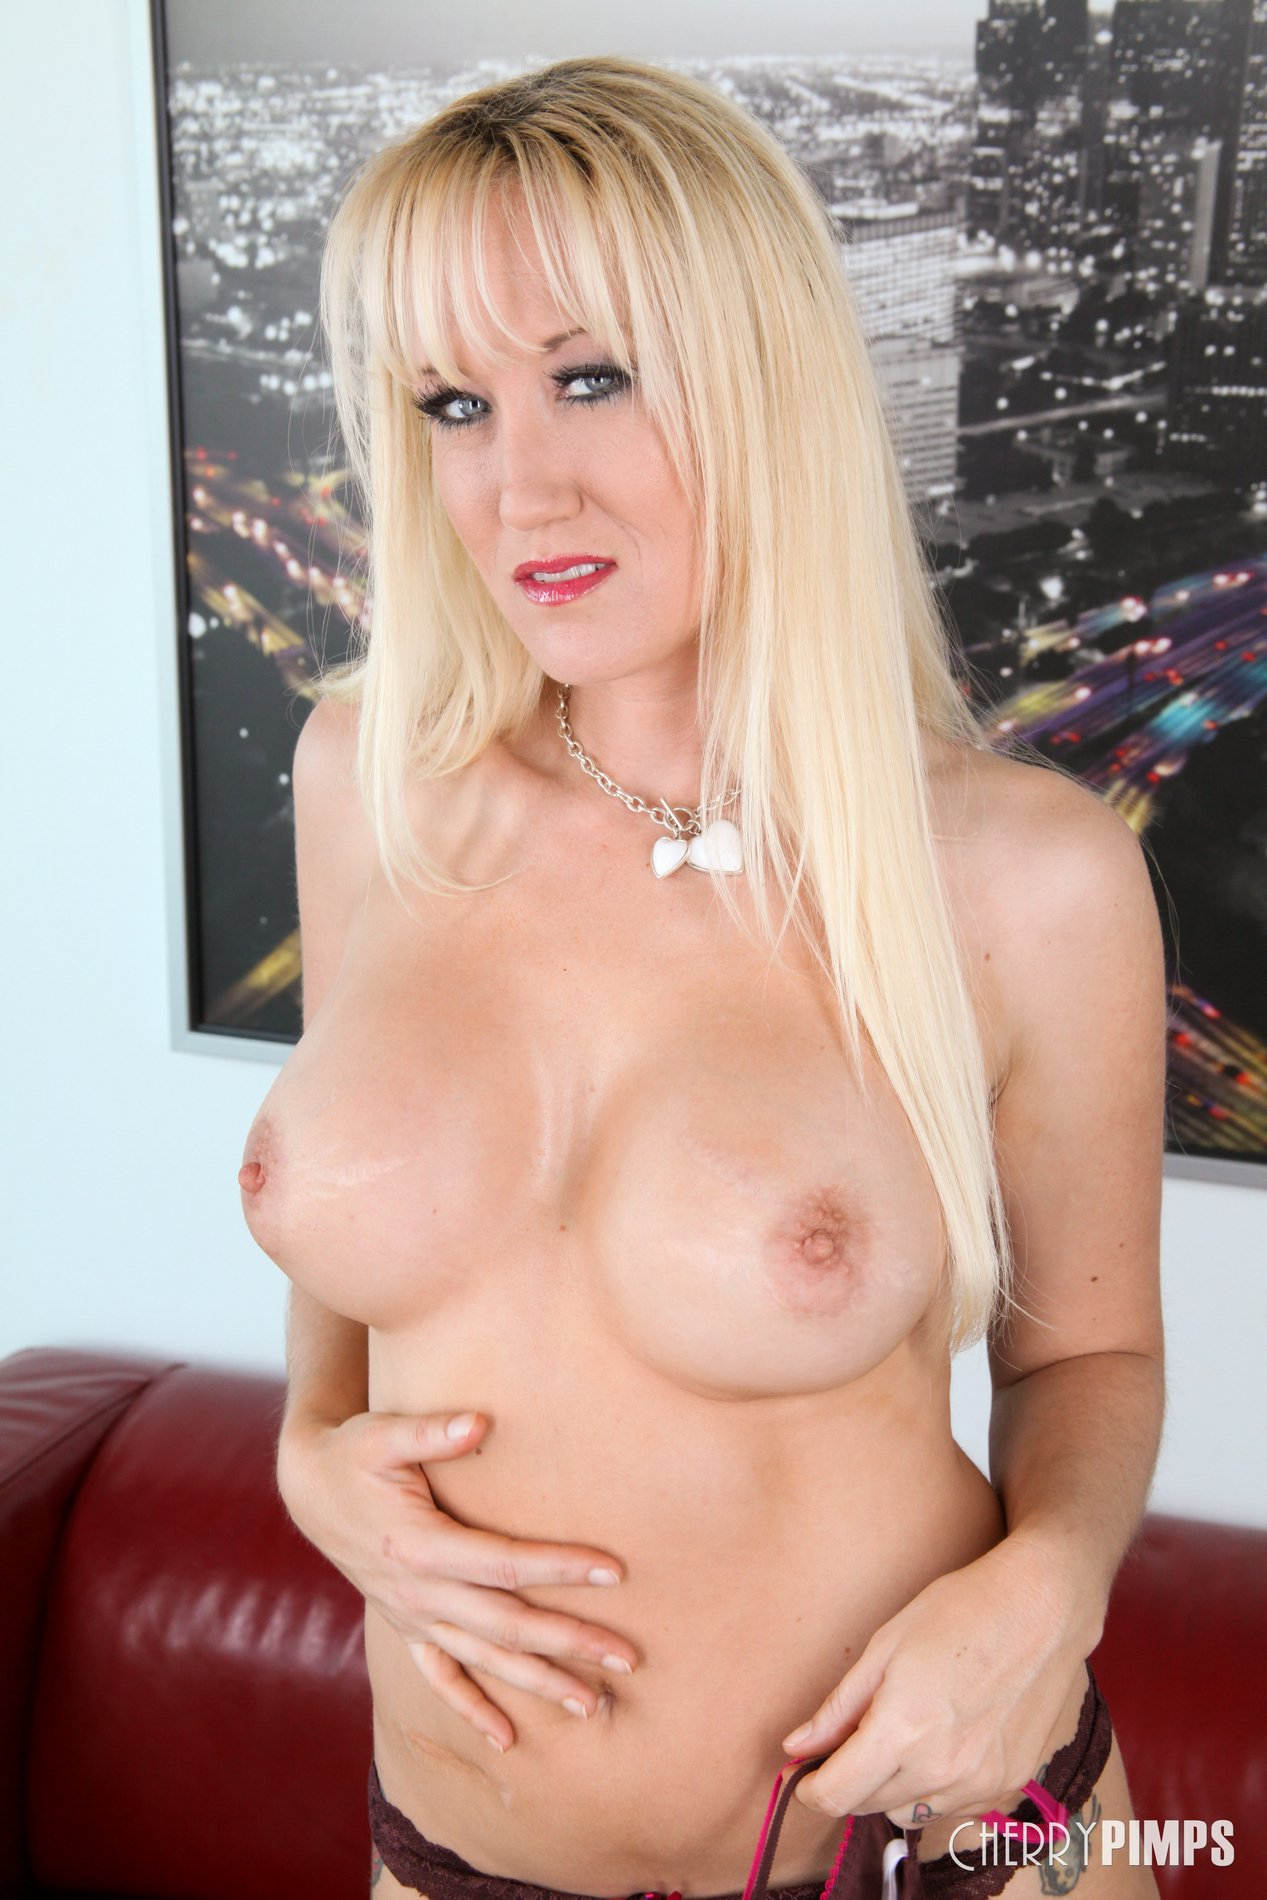 Alana evans interracial sex on the stairs 7